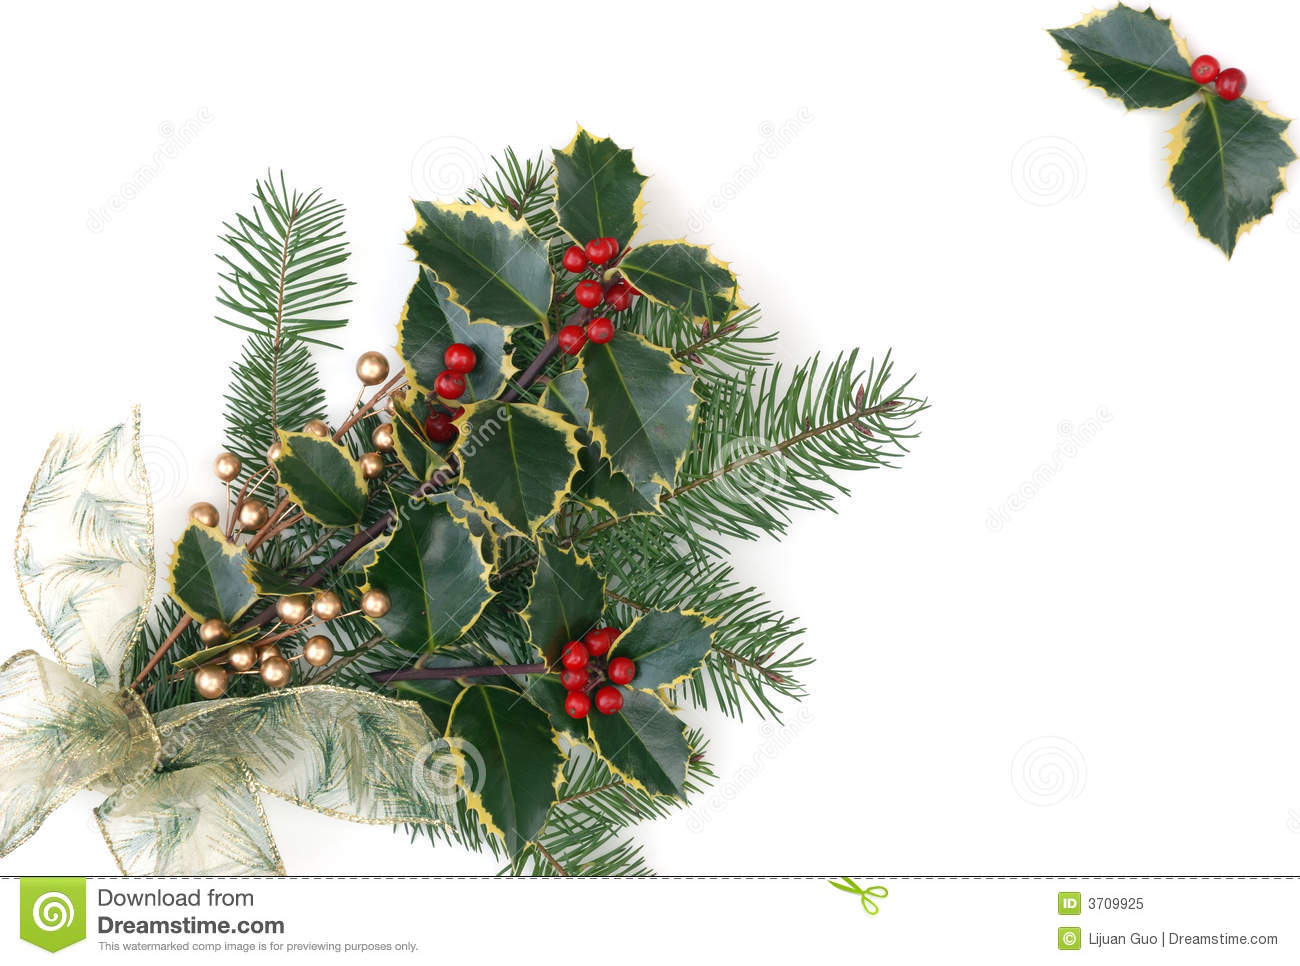 christmas decorations with holly berries - Christmas Holly Decorations